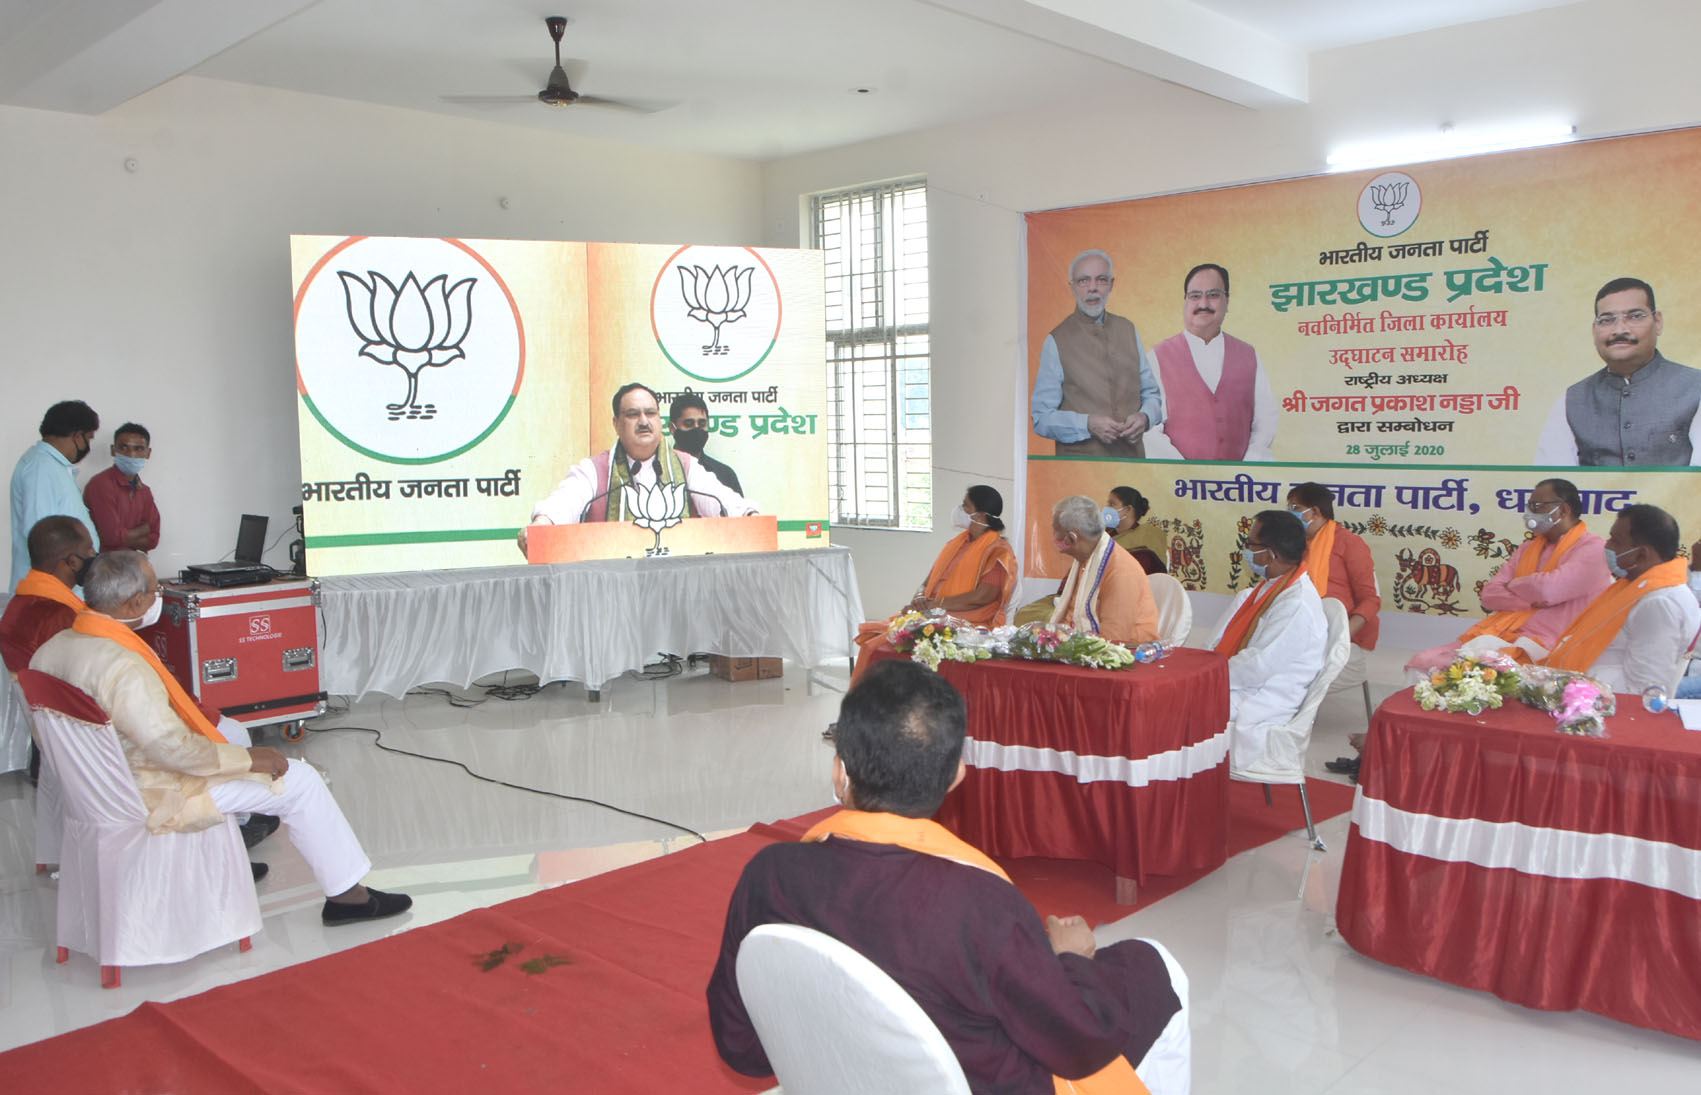 BJP leaders listen to the address of party chief J.P. Nadda during the online inauguration of a new party office at Baliapur Road in Dhanbad on Tuesday